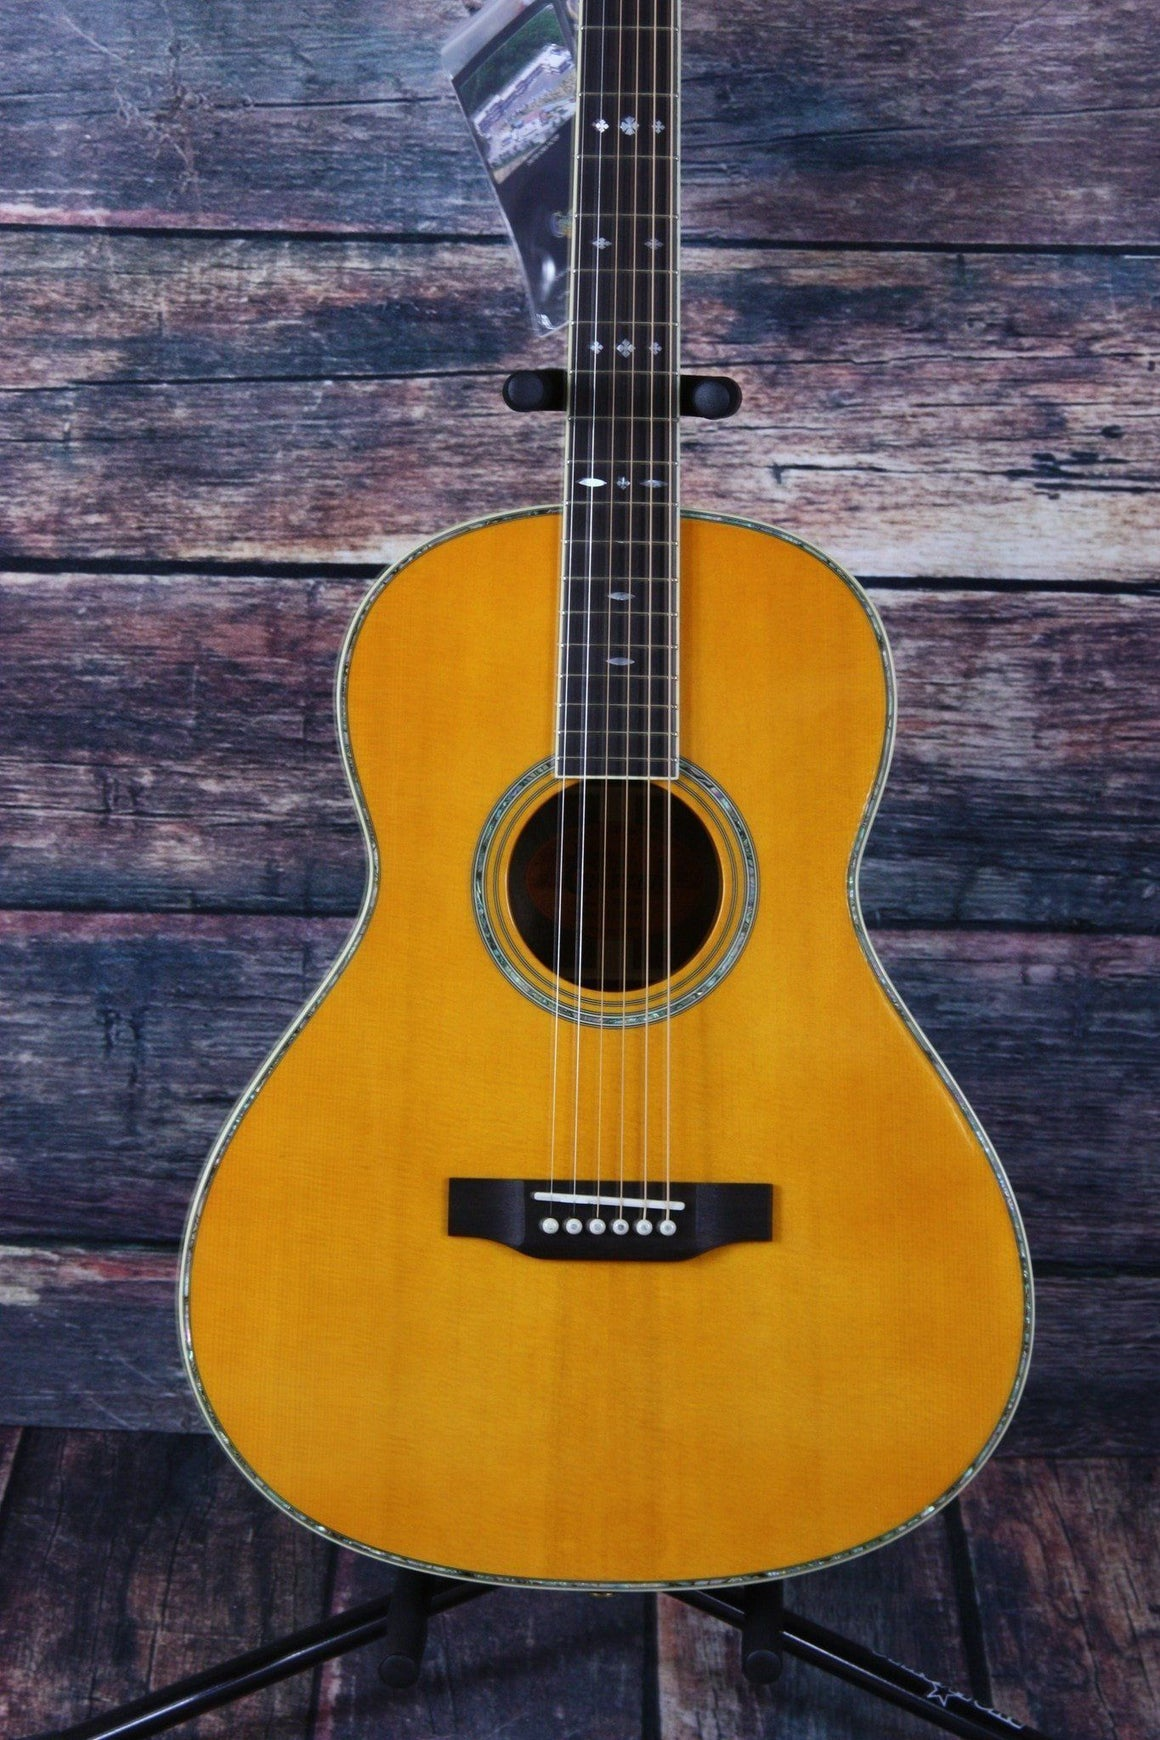 Crafter Acoustic Guitar Crafter Left Handed TA-080/AM Parlor Acoustic Guitar